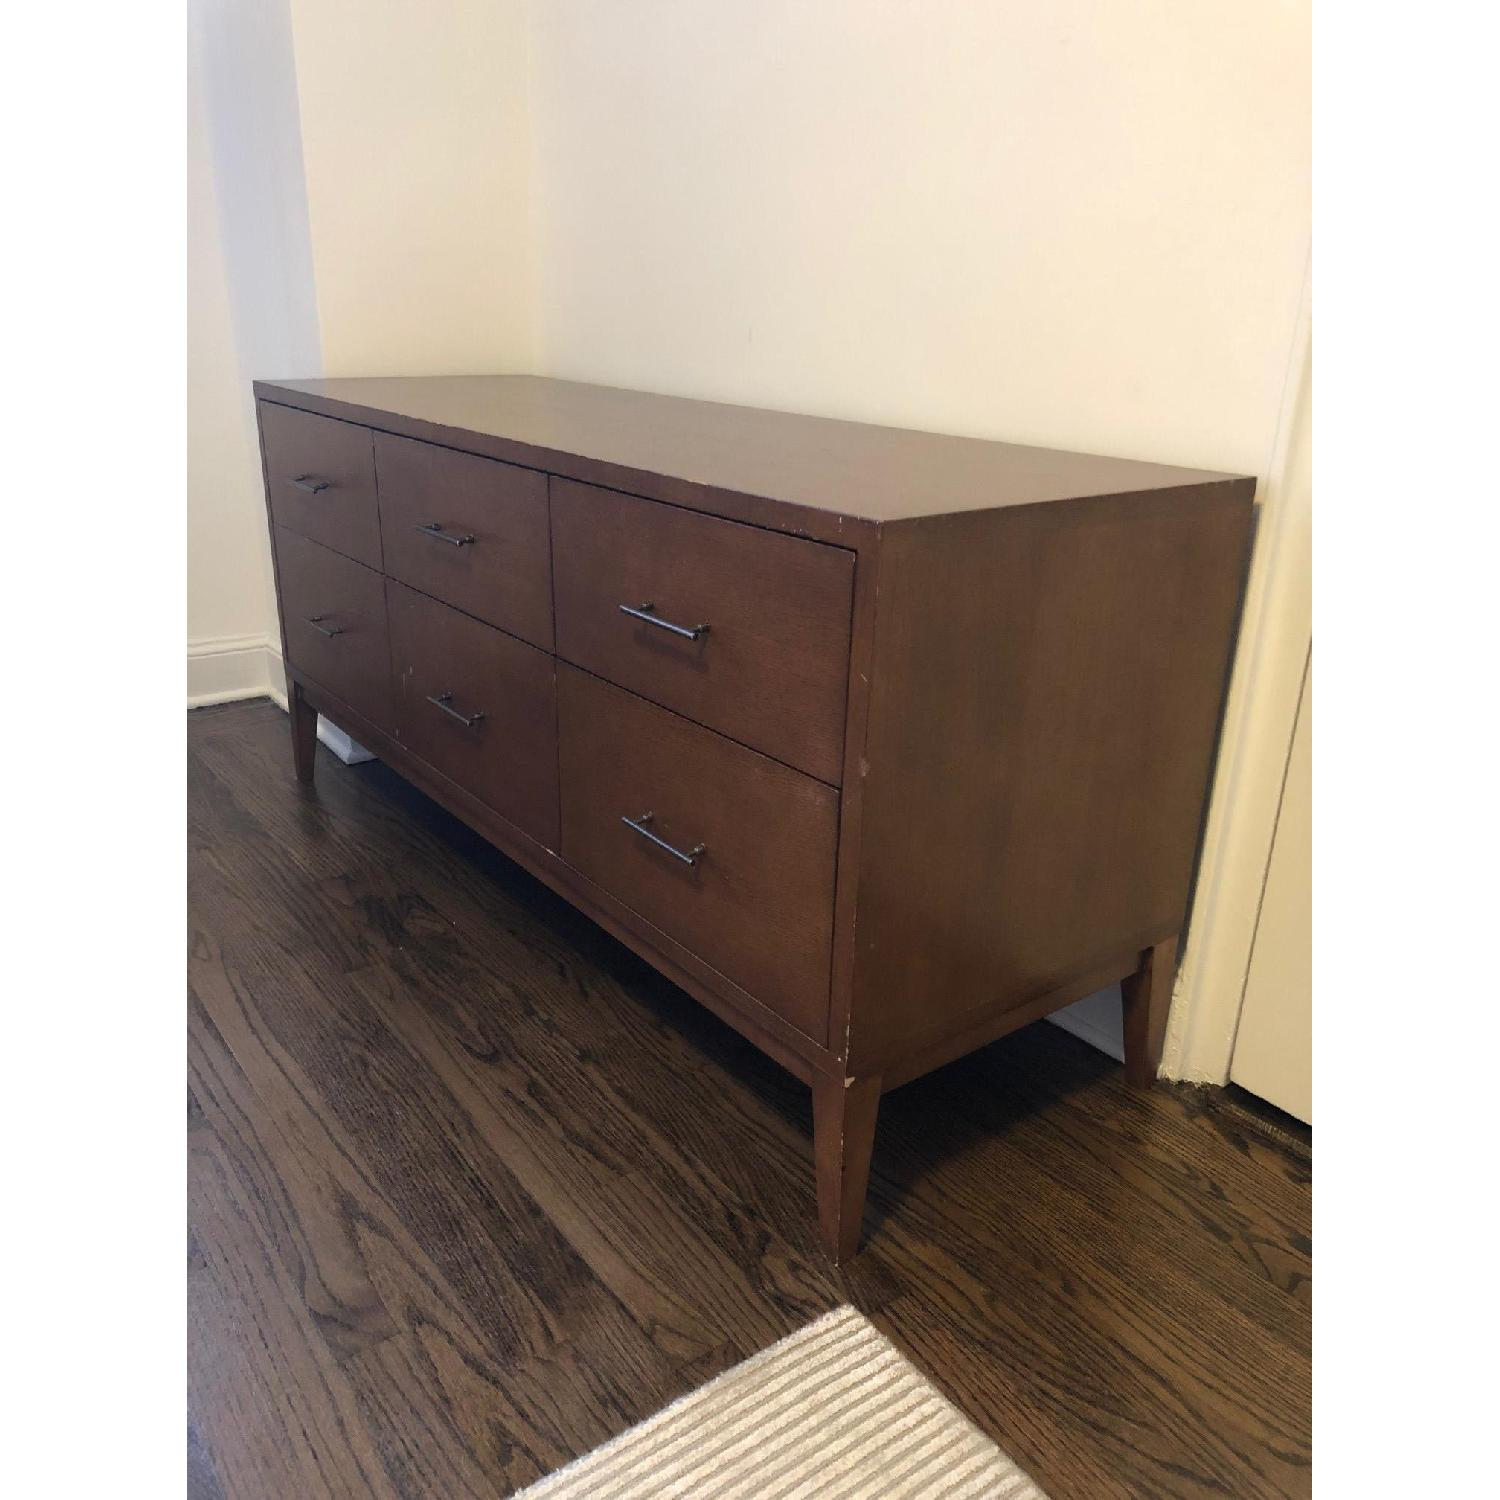 West Elm Narrow-Leg 6-Drawer Dresser in Acorn - image-1